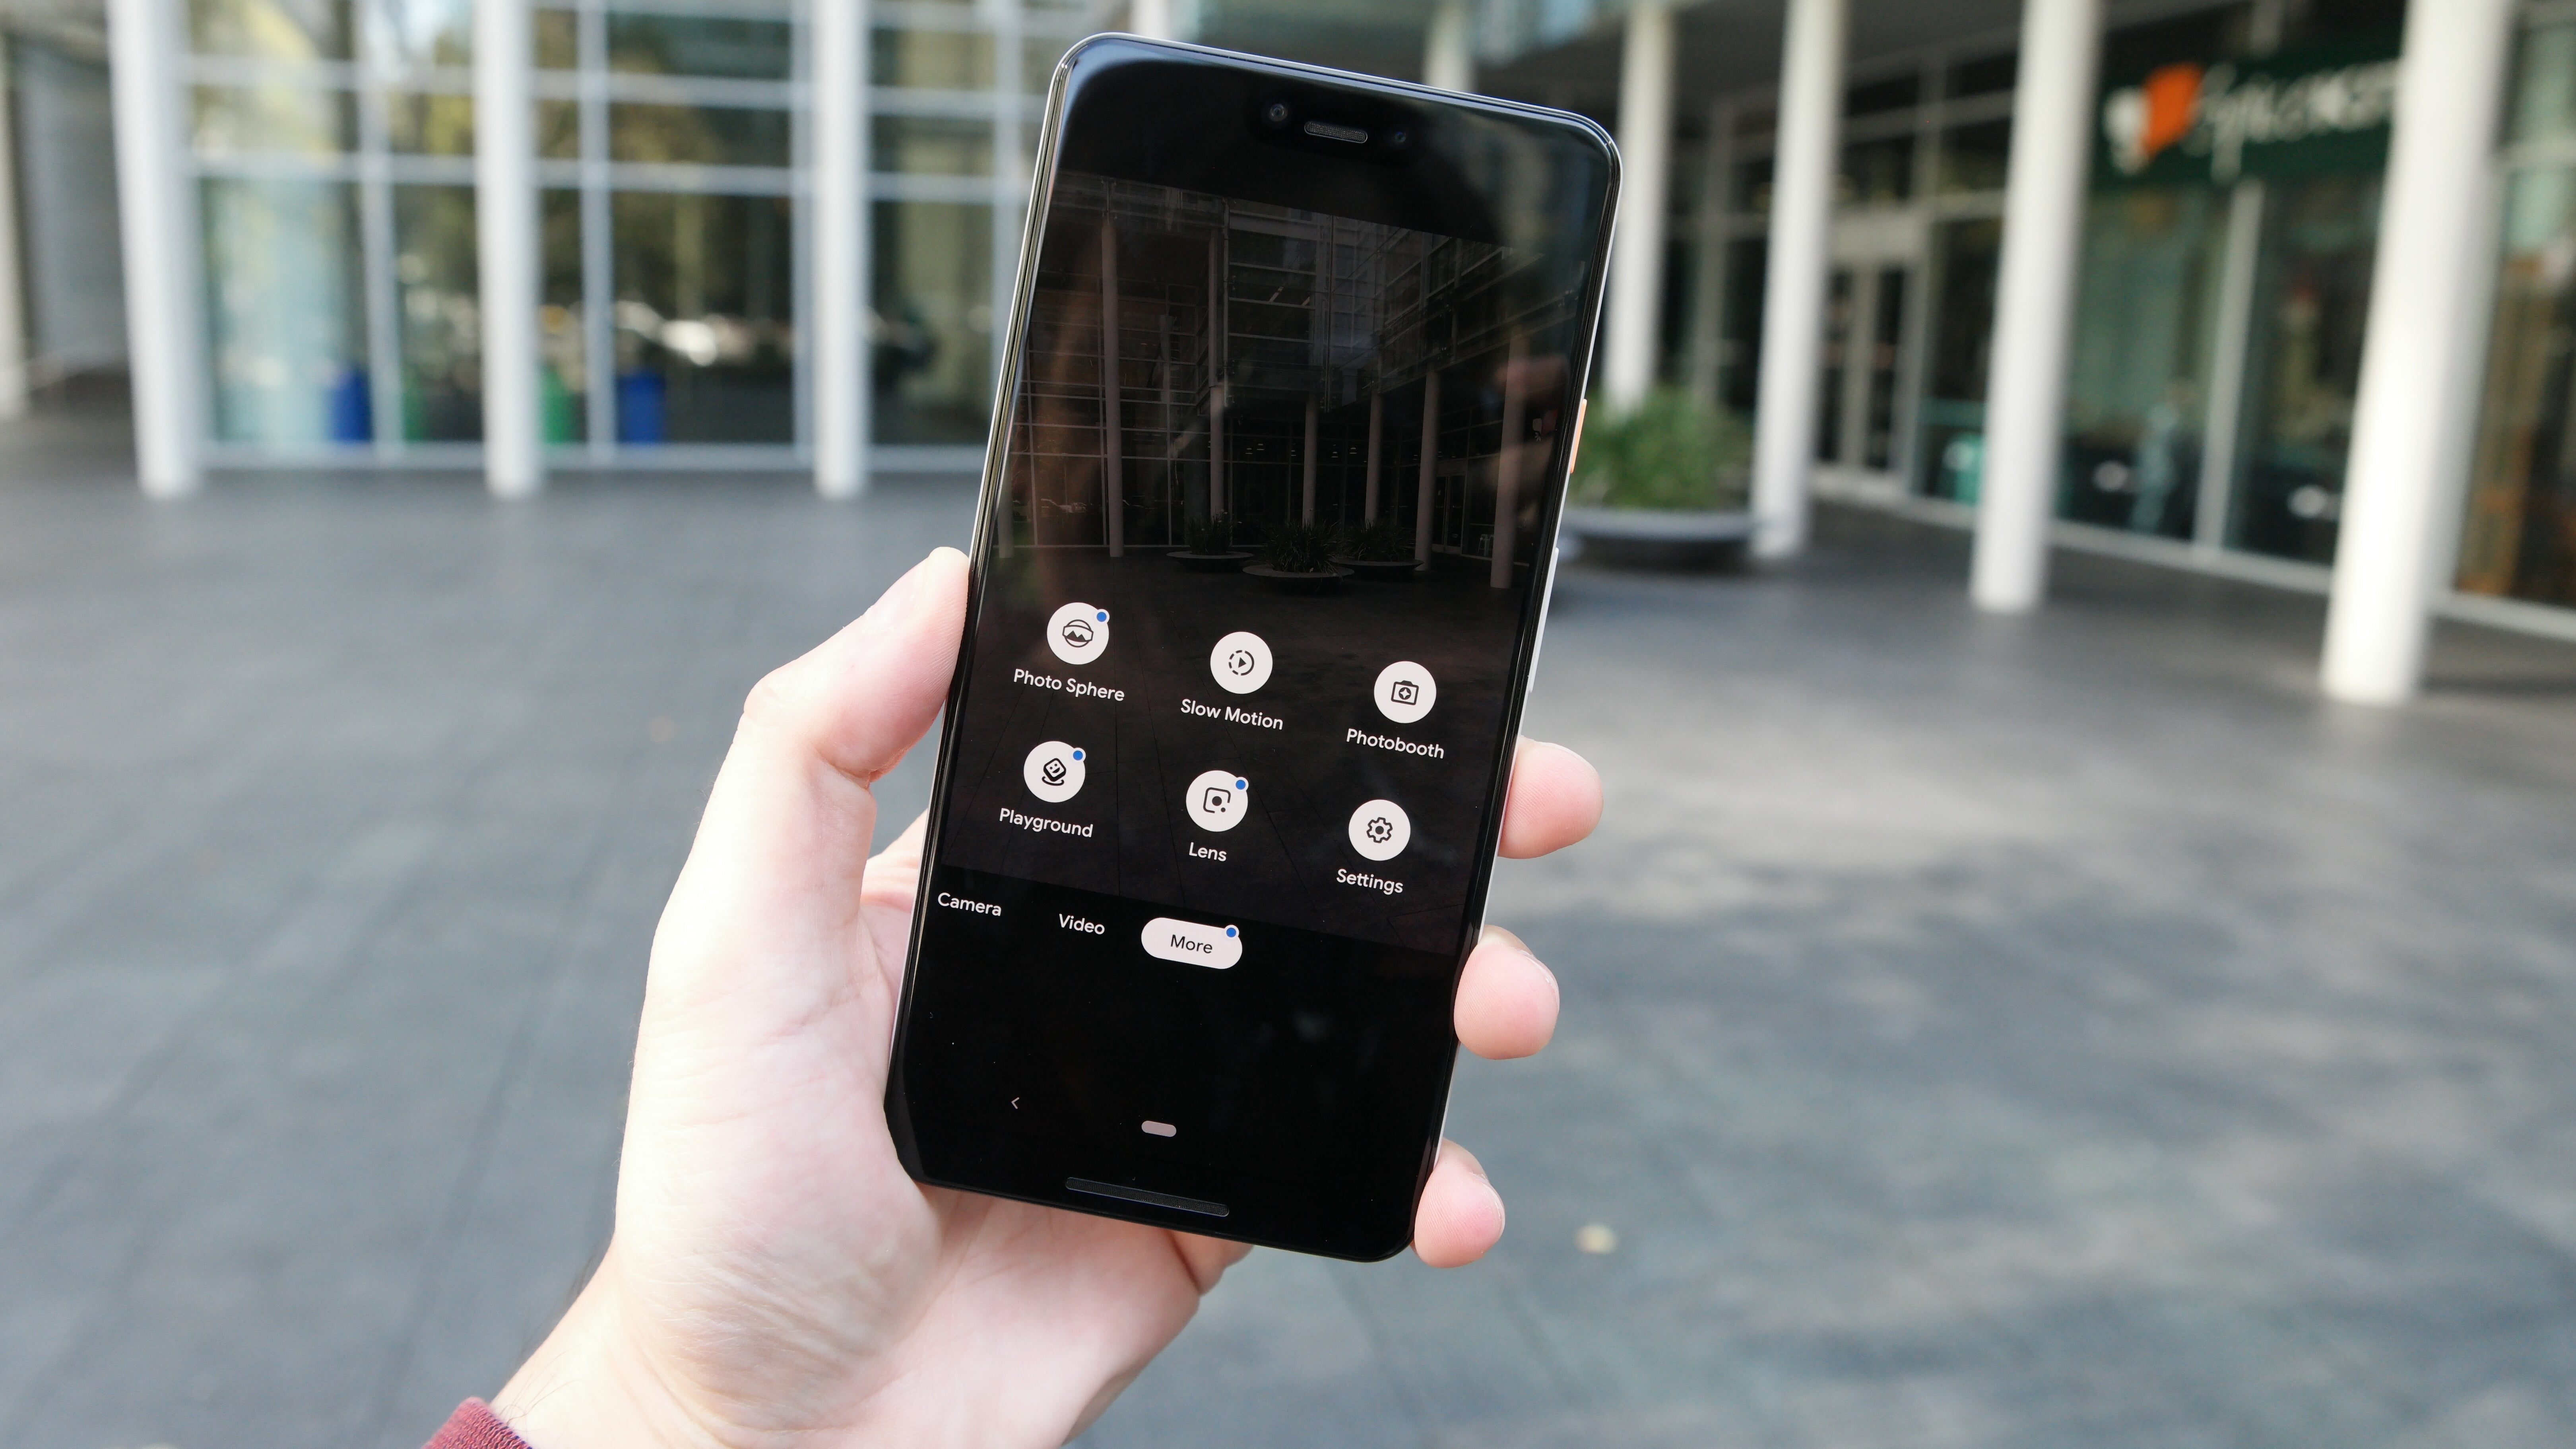 Pixel 3 Users Claim Their Text Messages Are Vanishing